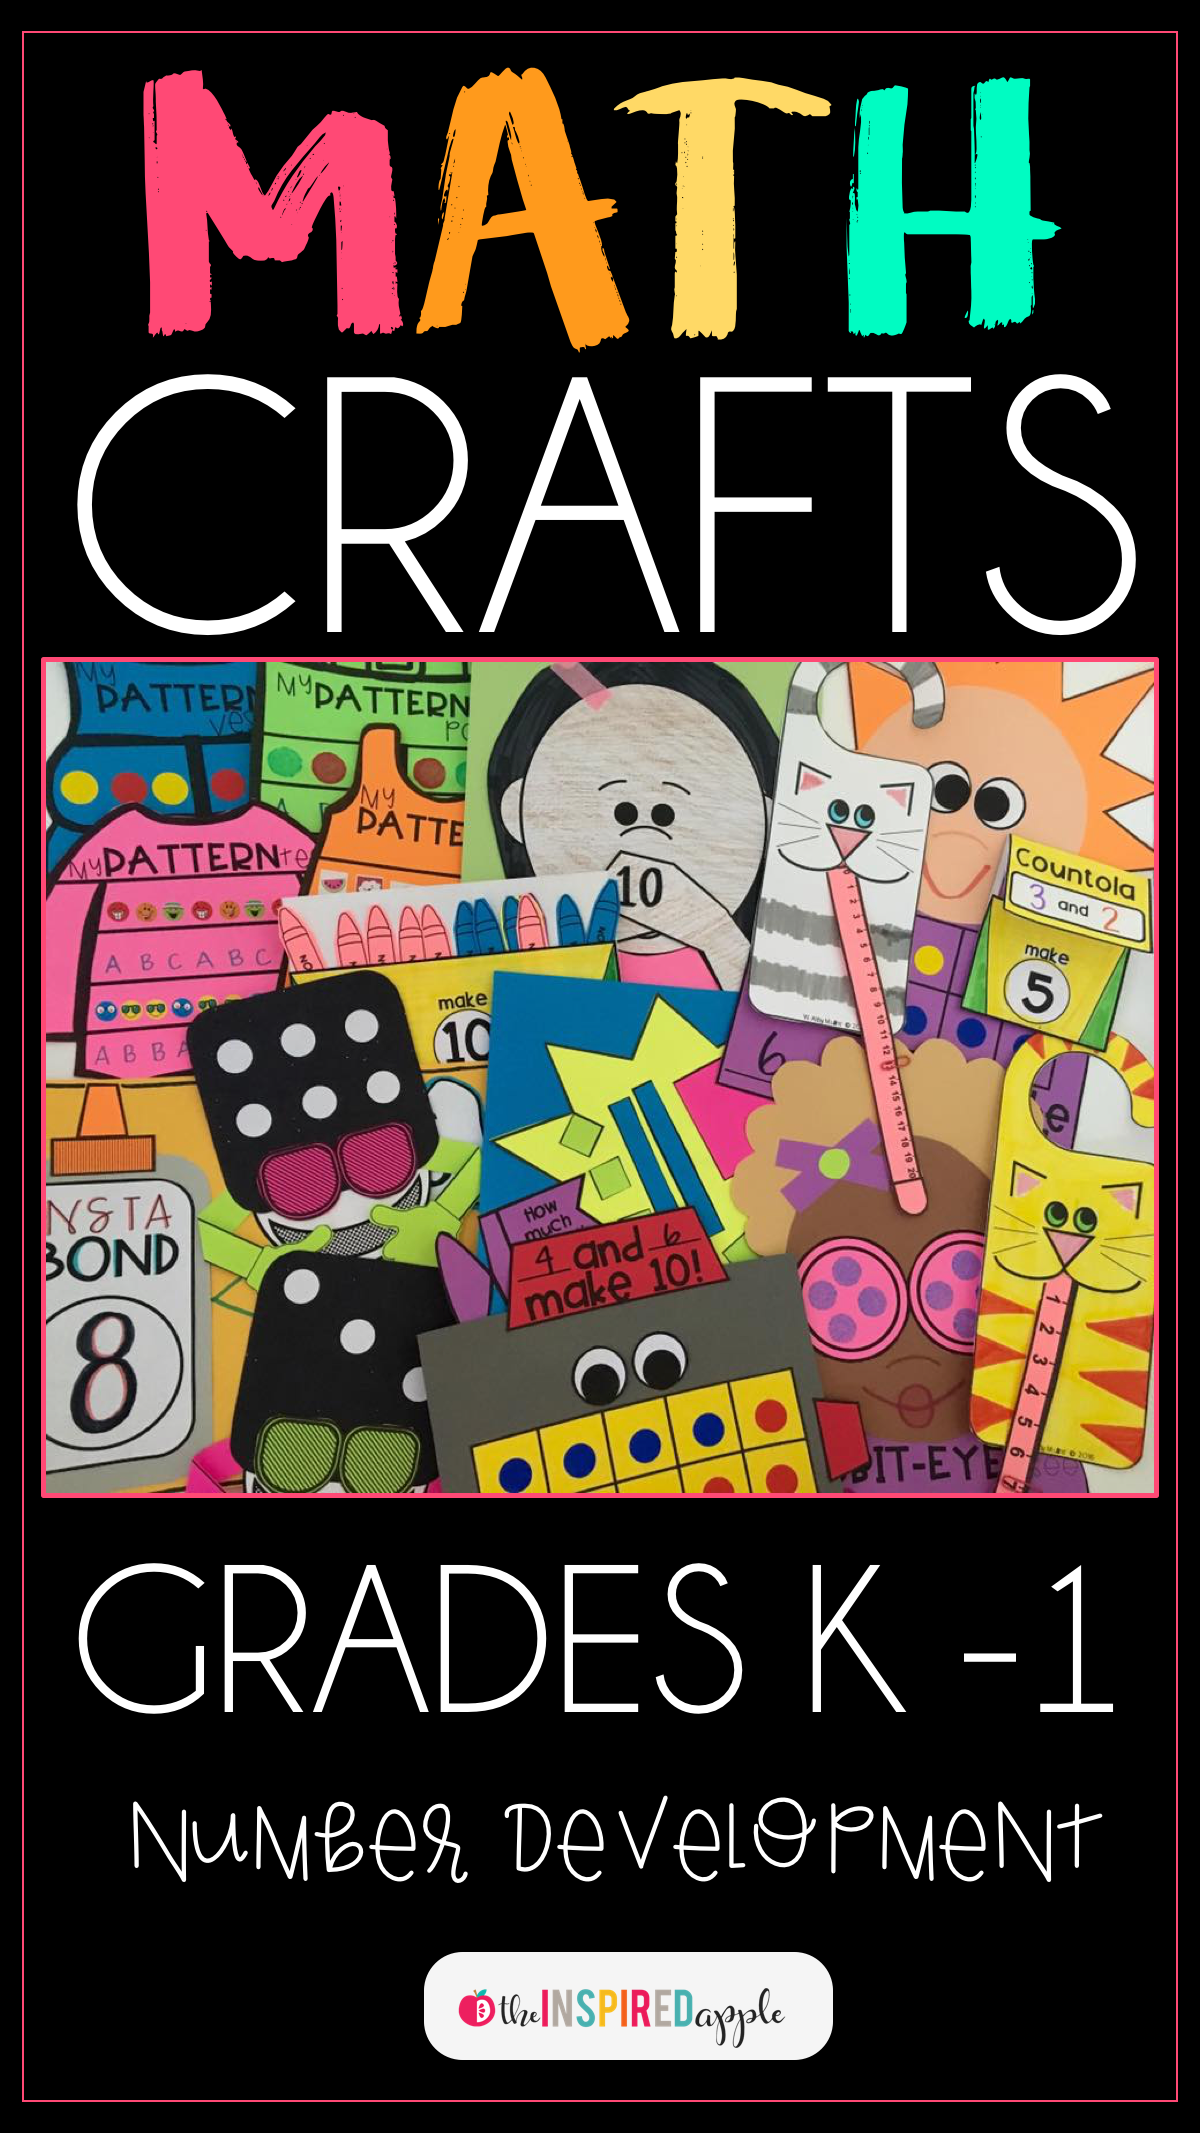 Kids In Kindergarten And First Grade Will Love These Math Crafts Make Learning Fun And Support Number Develop Math Crafts Math Craftivity Numbers Kindergarten [ 2133 x 1200 Pixel ]